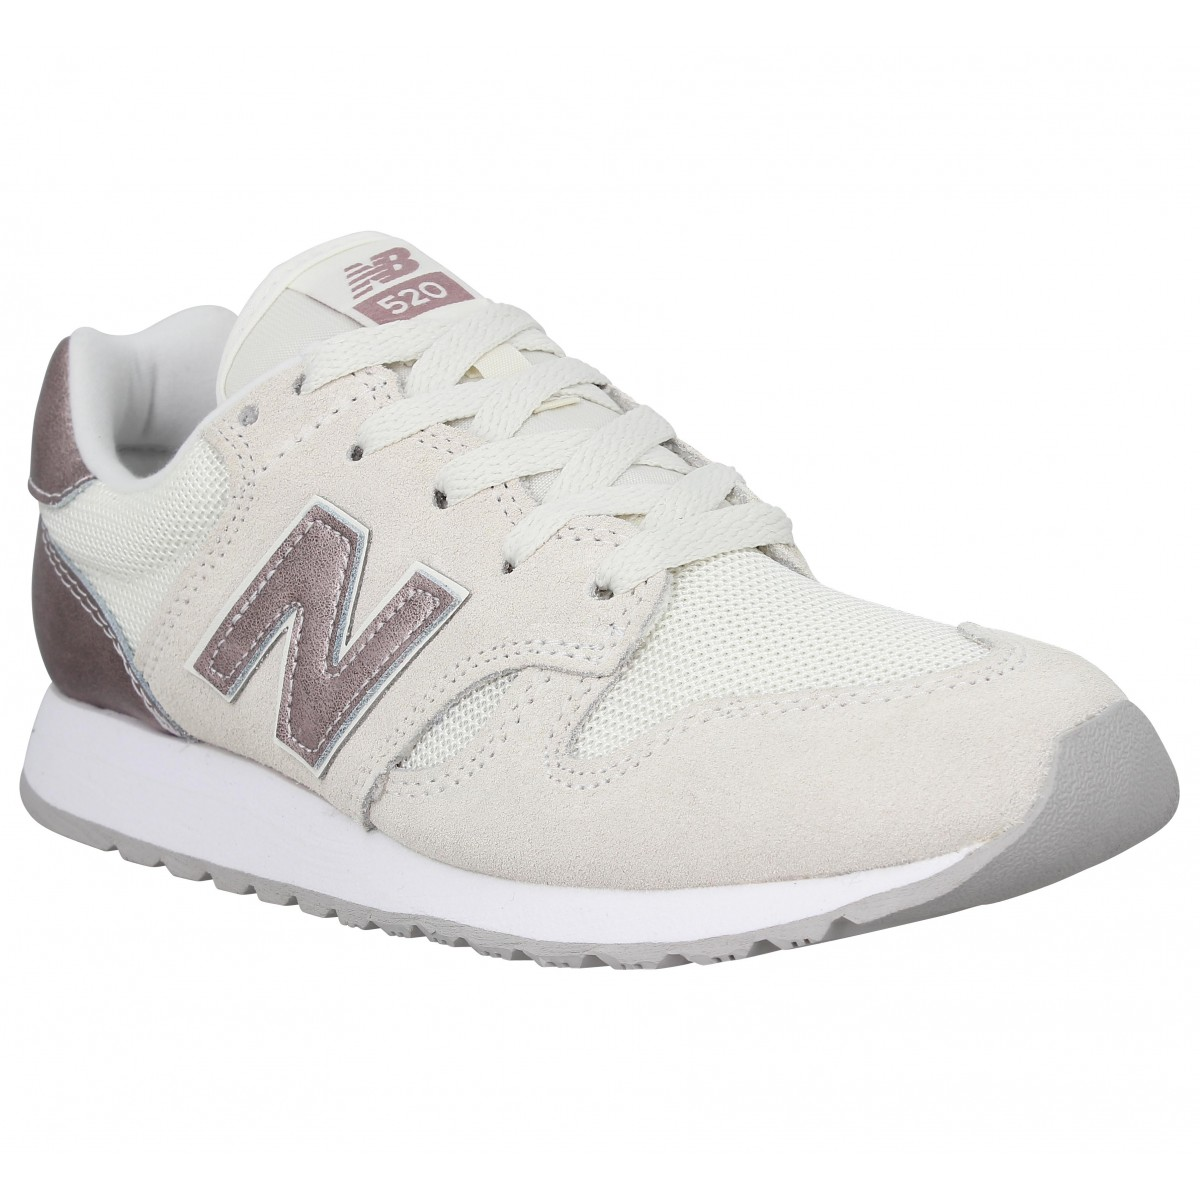 Baskets NEW BALANCE WL 520 velours toile Femme Salt